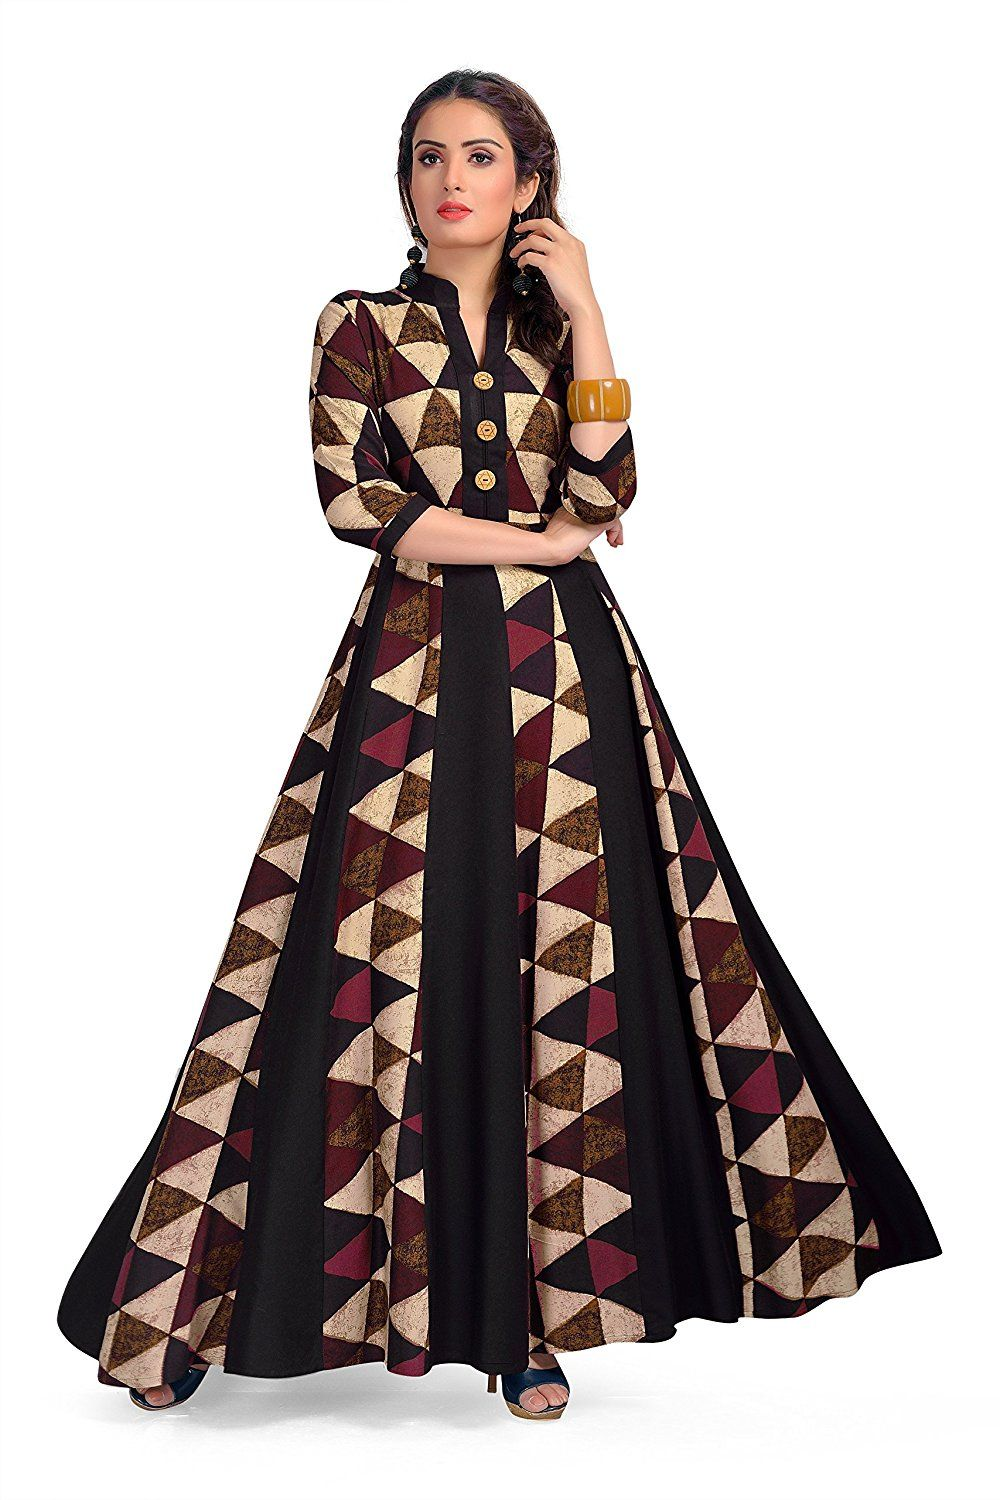 14f1a7e8467 ... Maxi Gown style Kurta - Party wear long rayon beautiful womens wear  kurti - Latest bollywood readymade western dress collection  Amazon.in   Clothing   ...